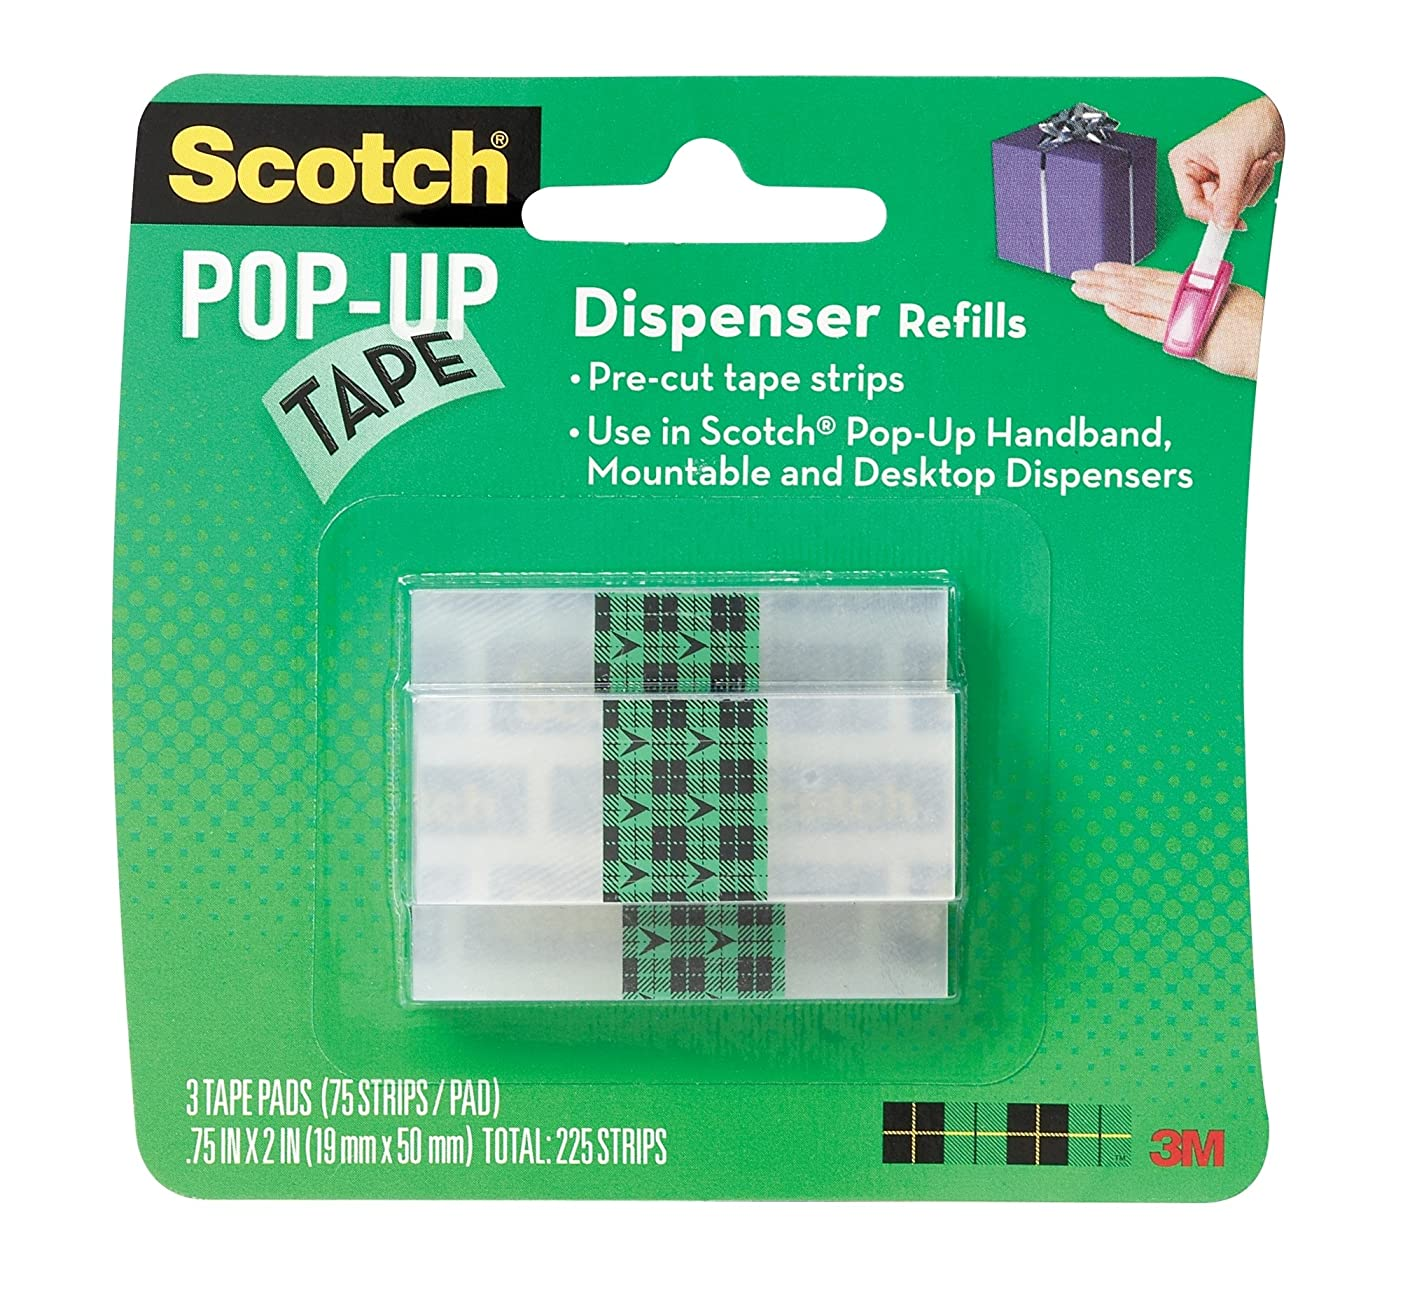 3M 99-G-W 051141234823 Scotch 99G Office Tape-3/4 in Width-for Use with: Pop-Up Tape Dispensers-23482 [Price is per Pack]